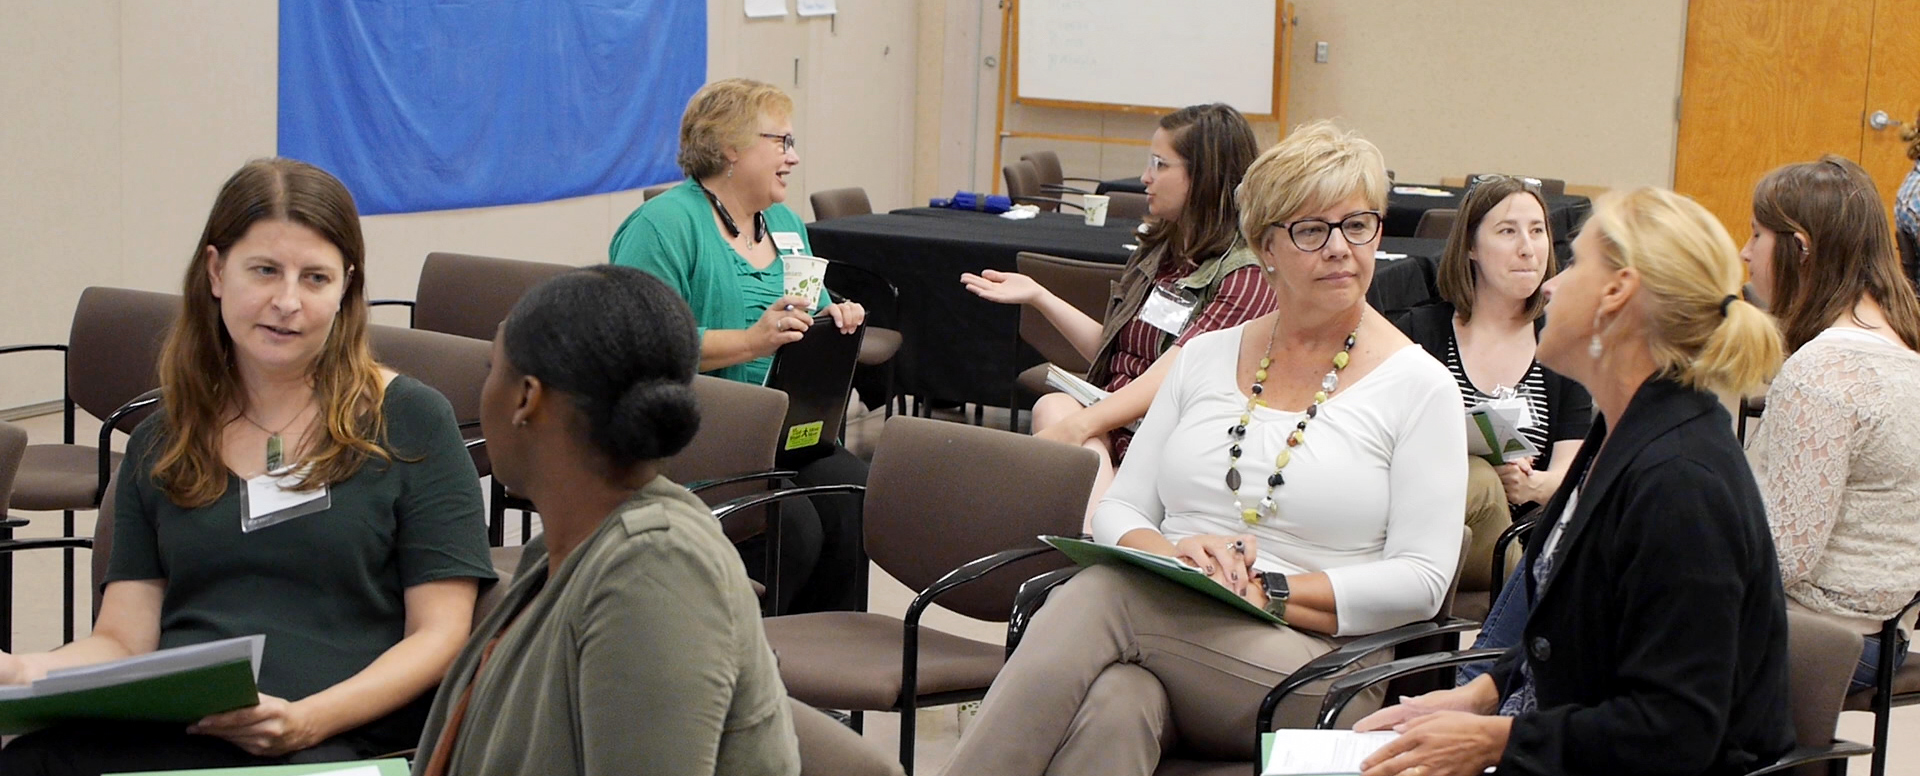 Attendees drafted and practiced talking points and their food council pitch with each other.